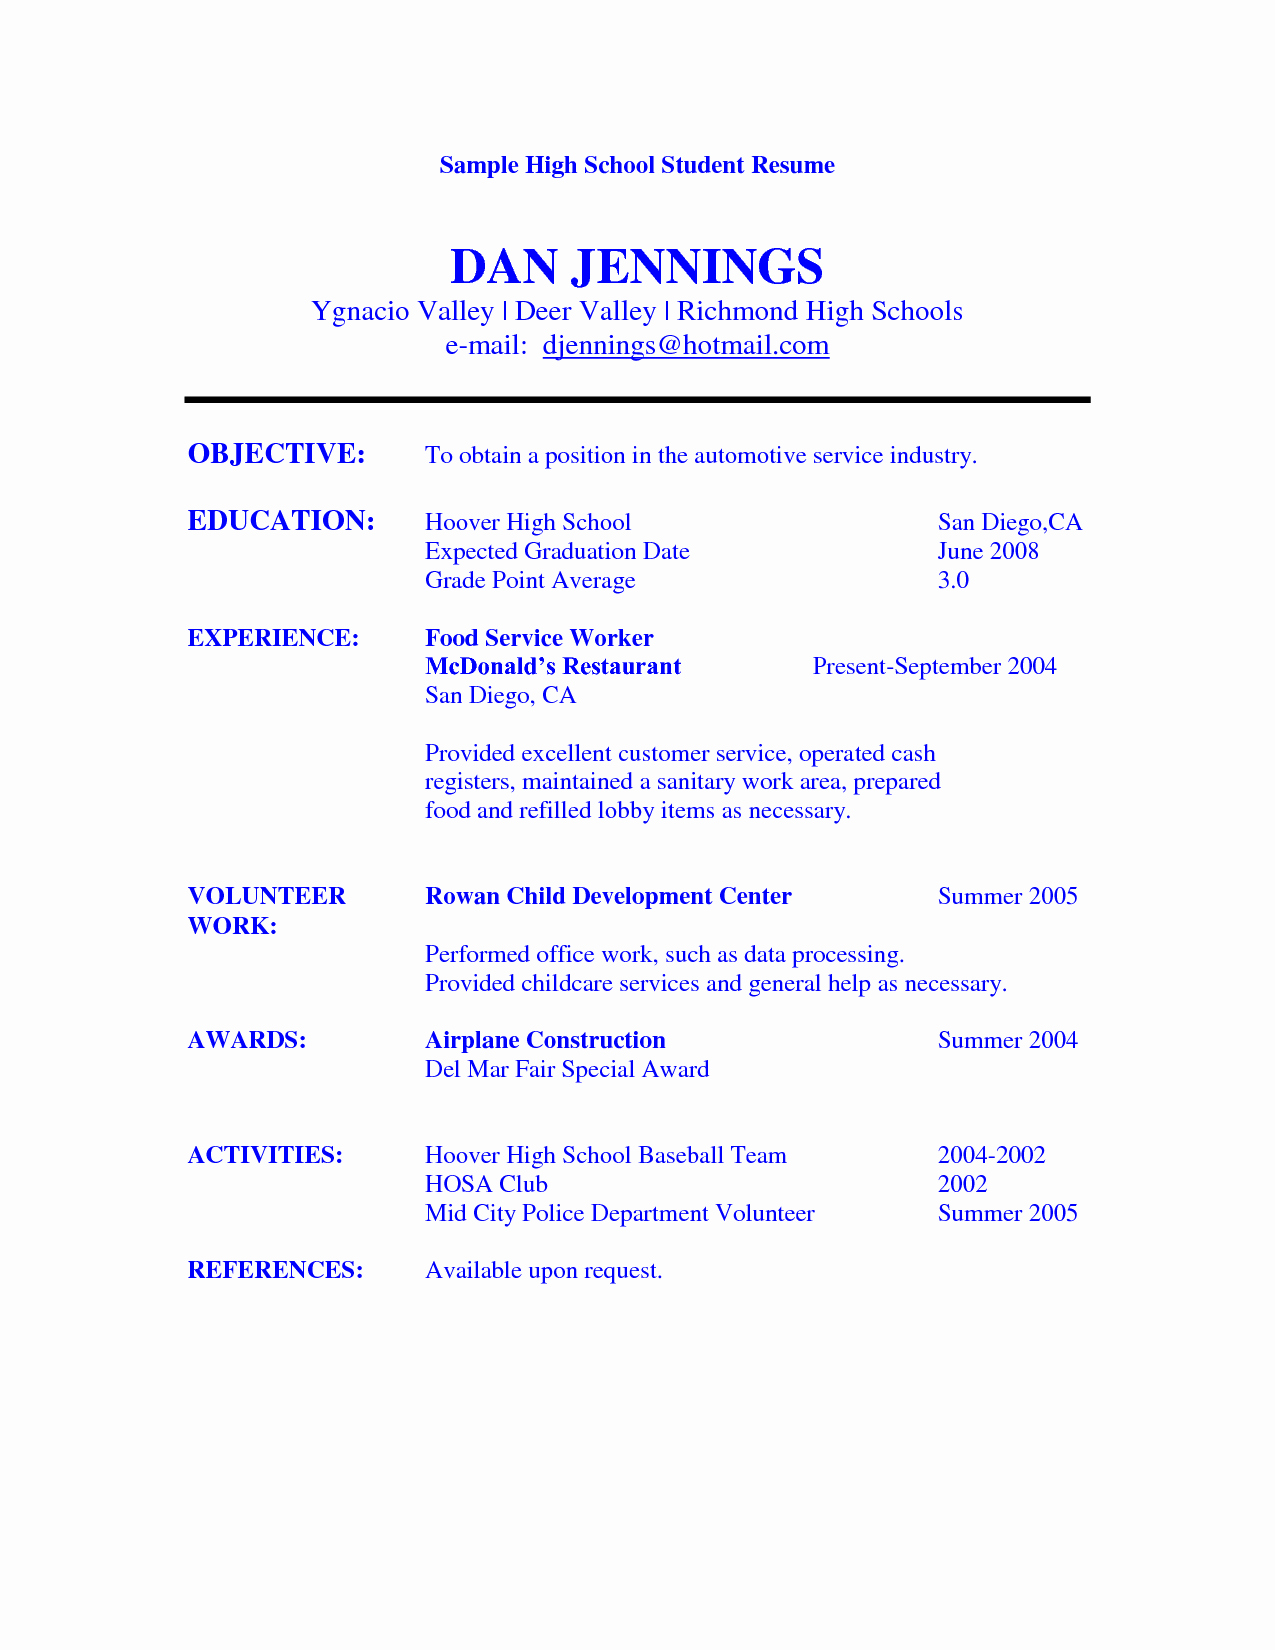 Free Resume Templates for Students Beautiful Pin Oleh Jobresume Di Resume Career Termplate Free